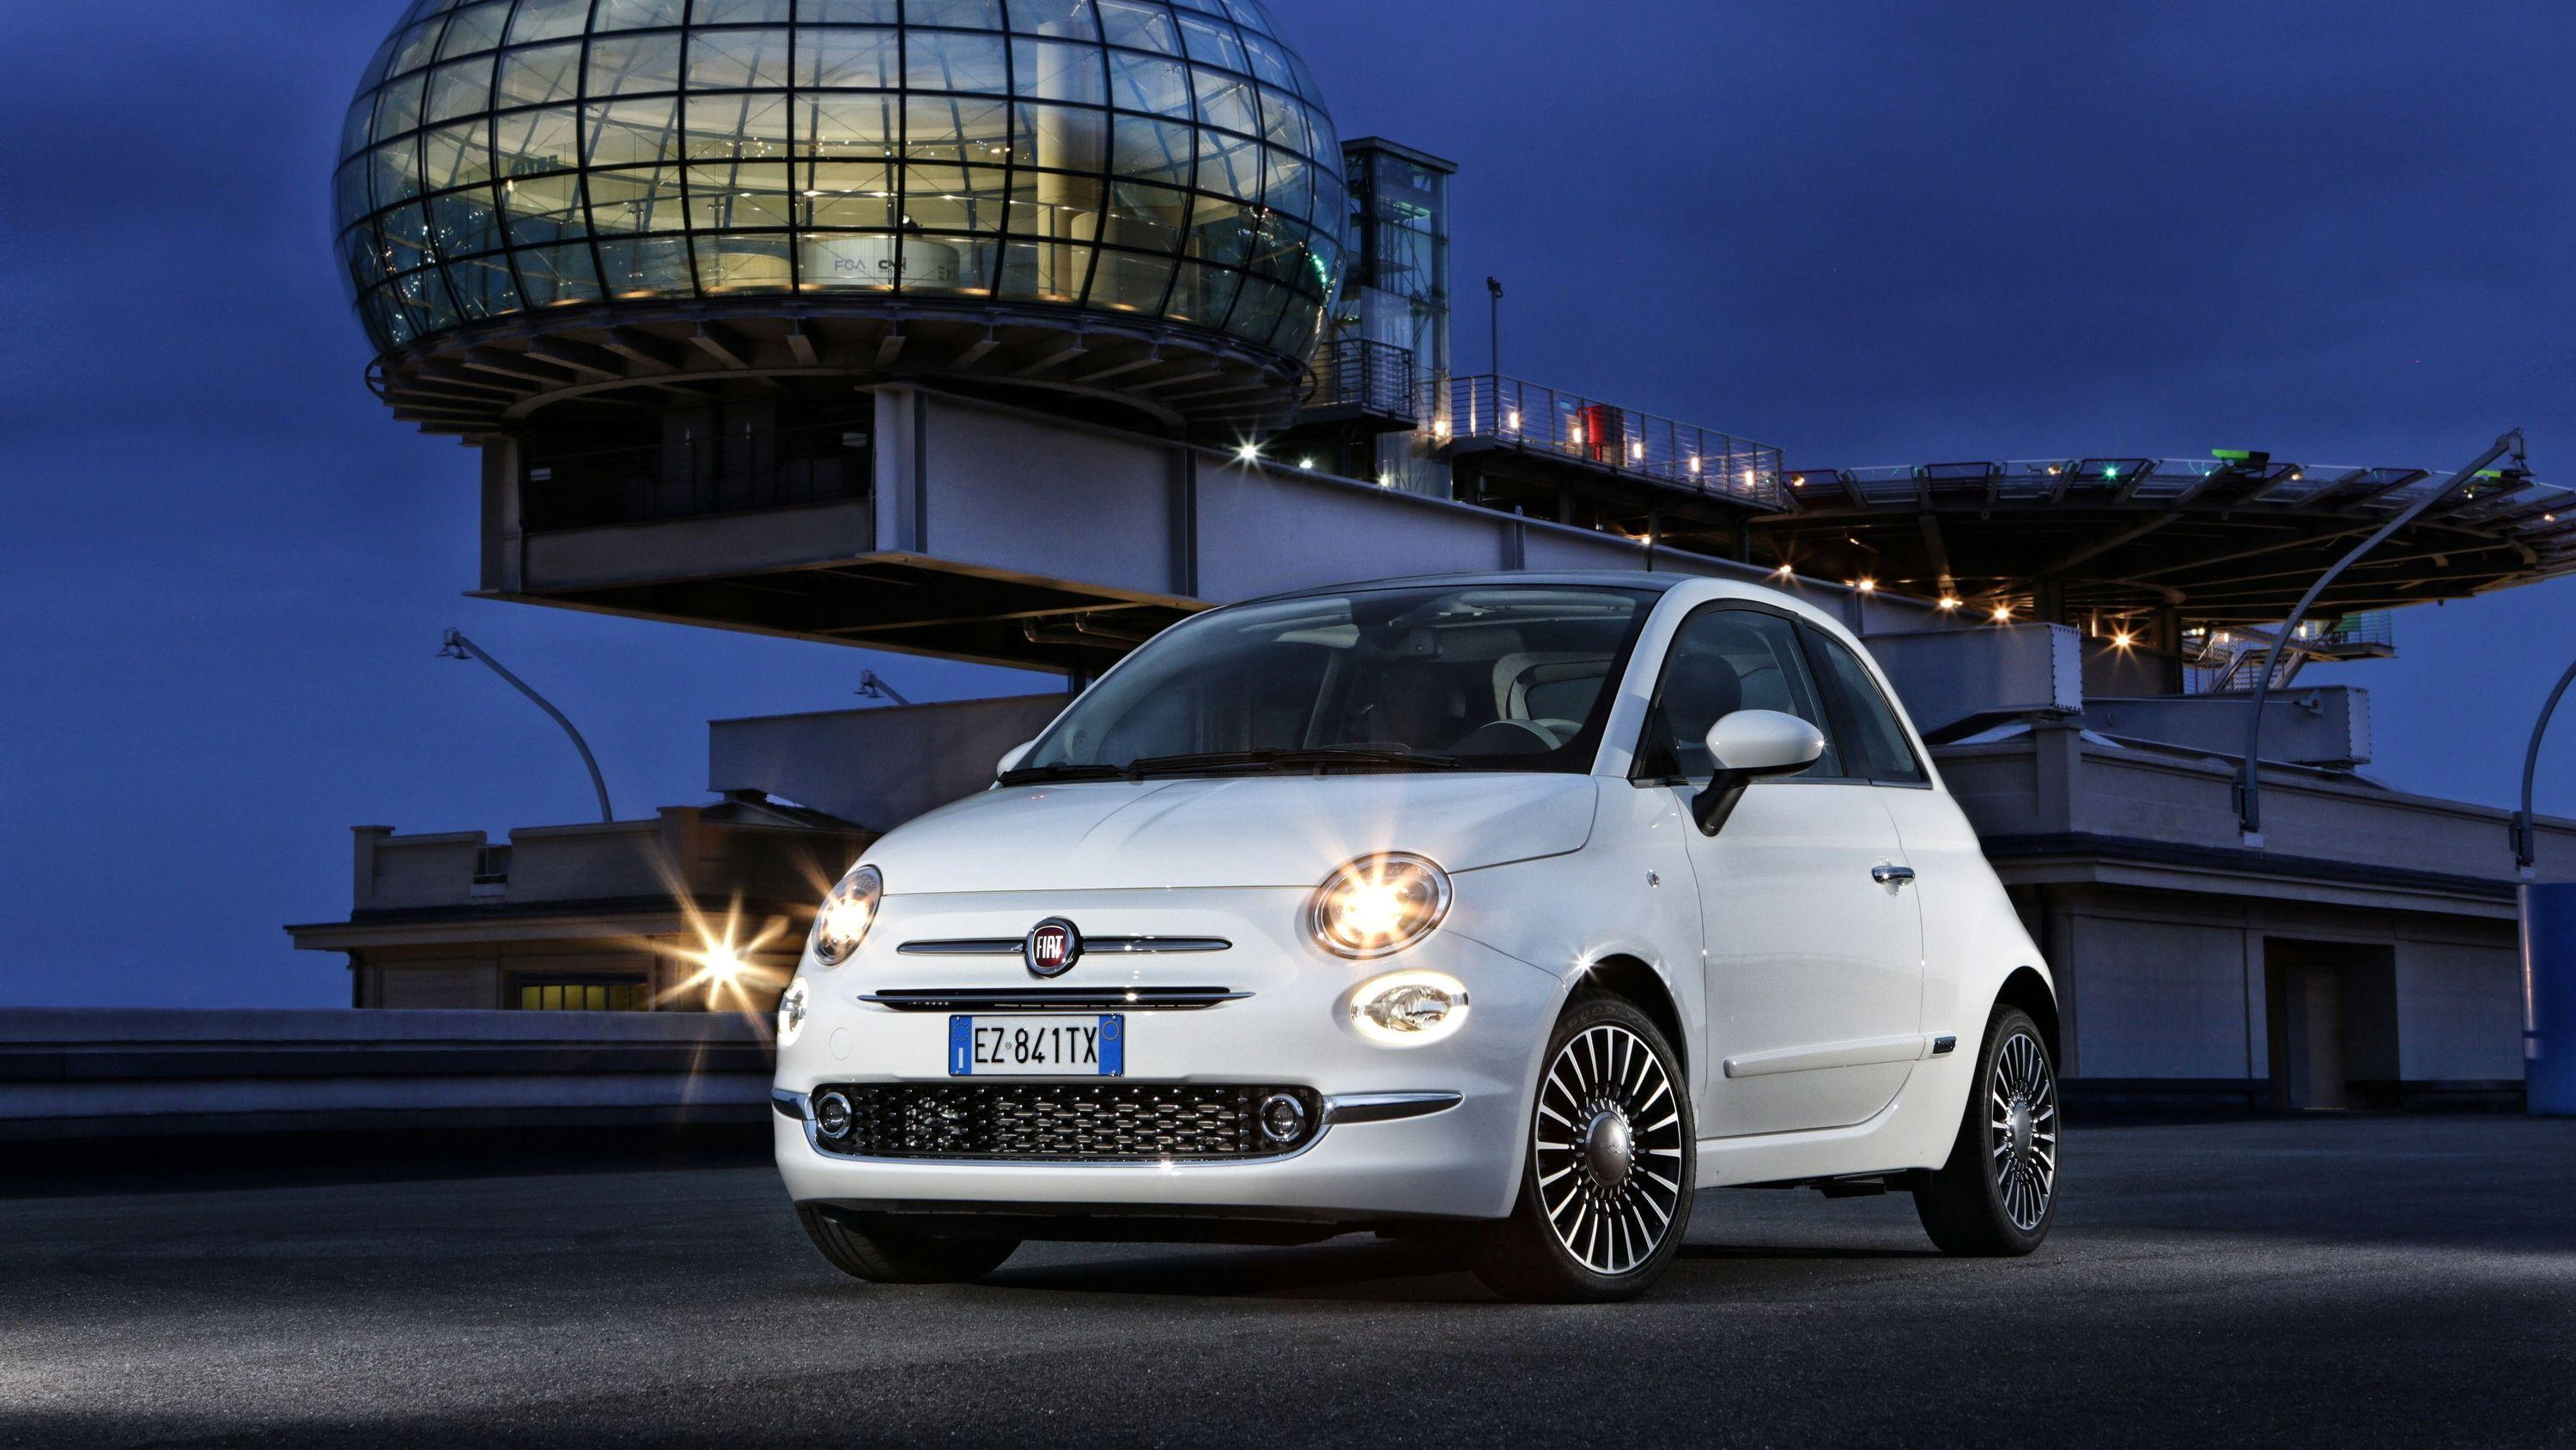 Wallpaper Of The Day: 2106 - 2019 Fiat 500 | Top Speed